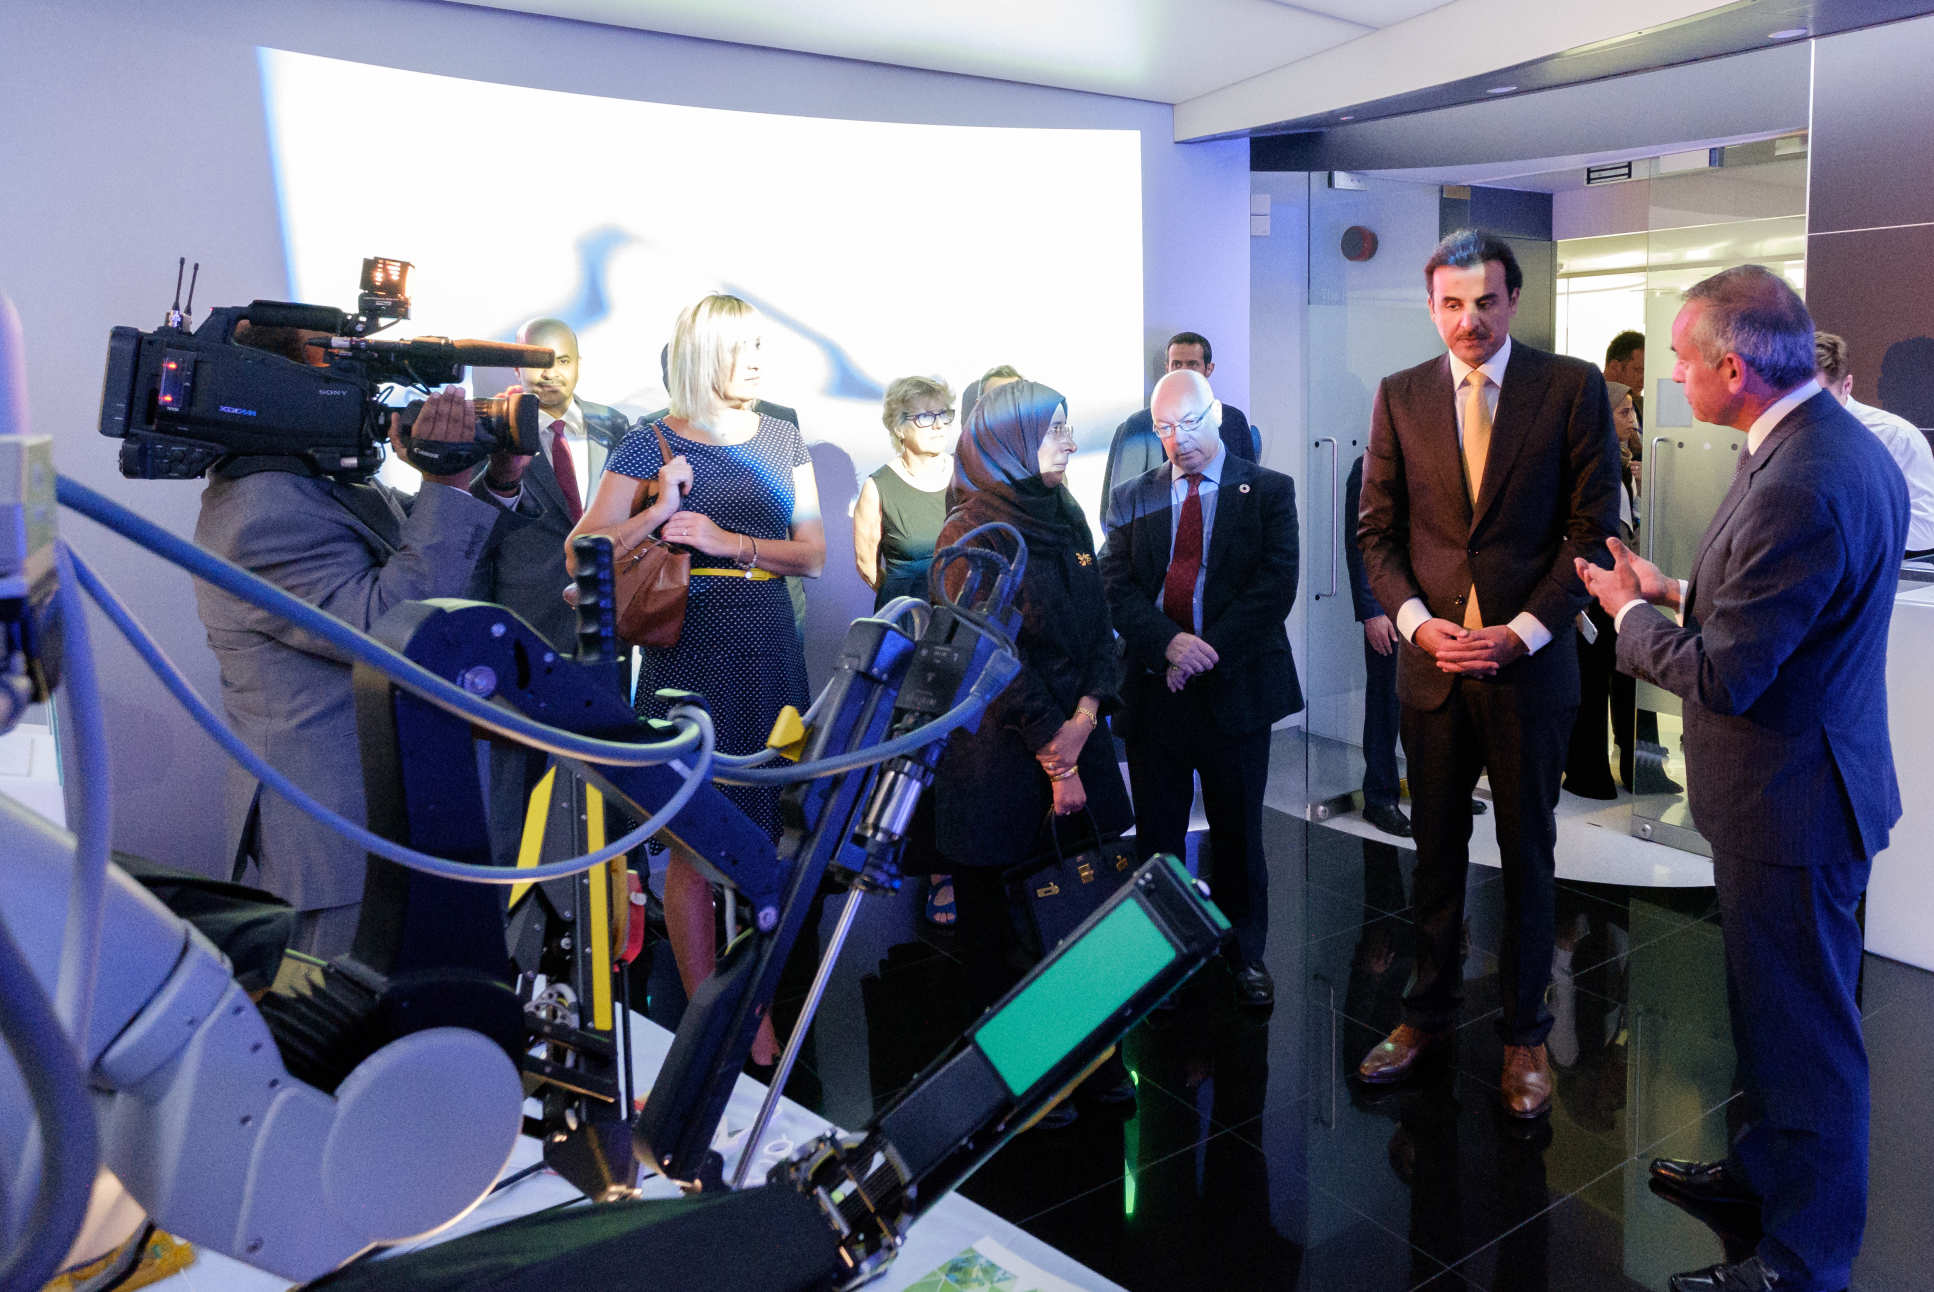 The Amir of Qatar saw a demonstration of the Da Vinci surgical robot